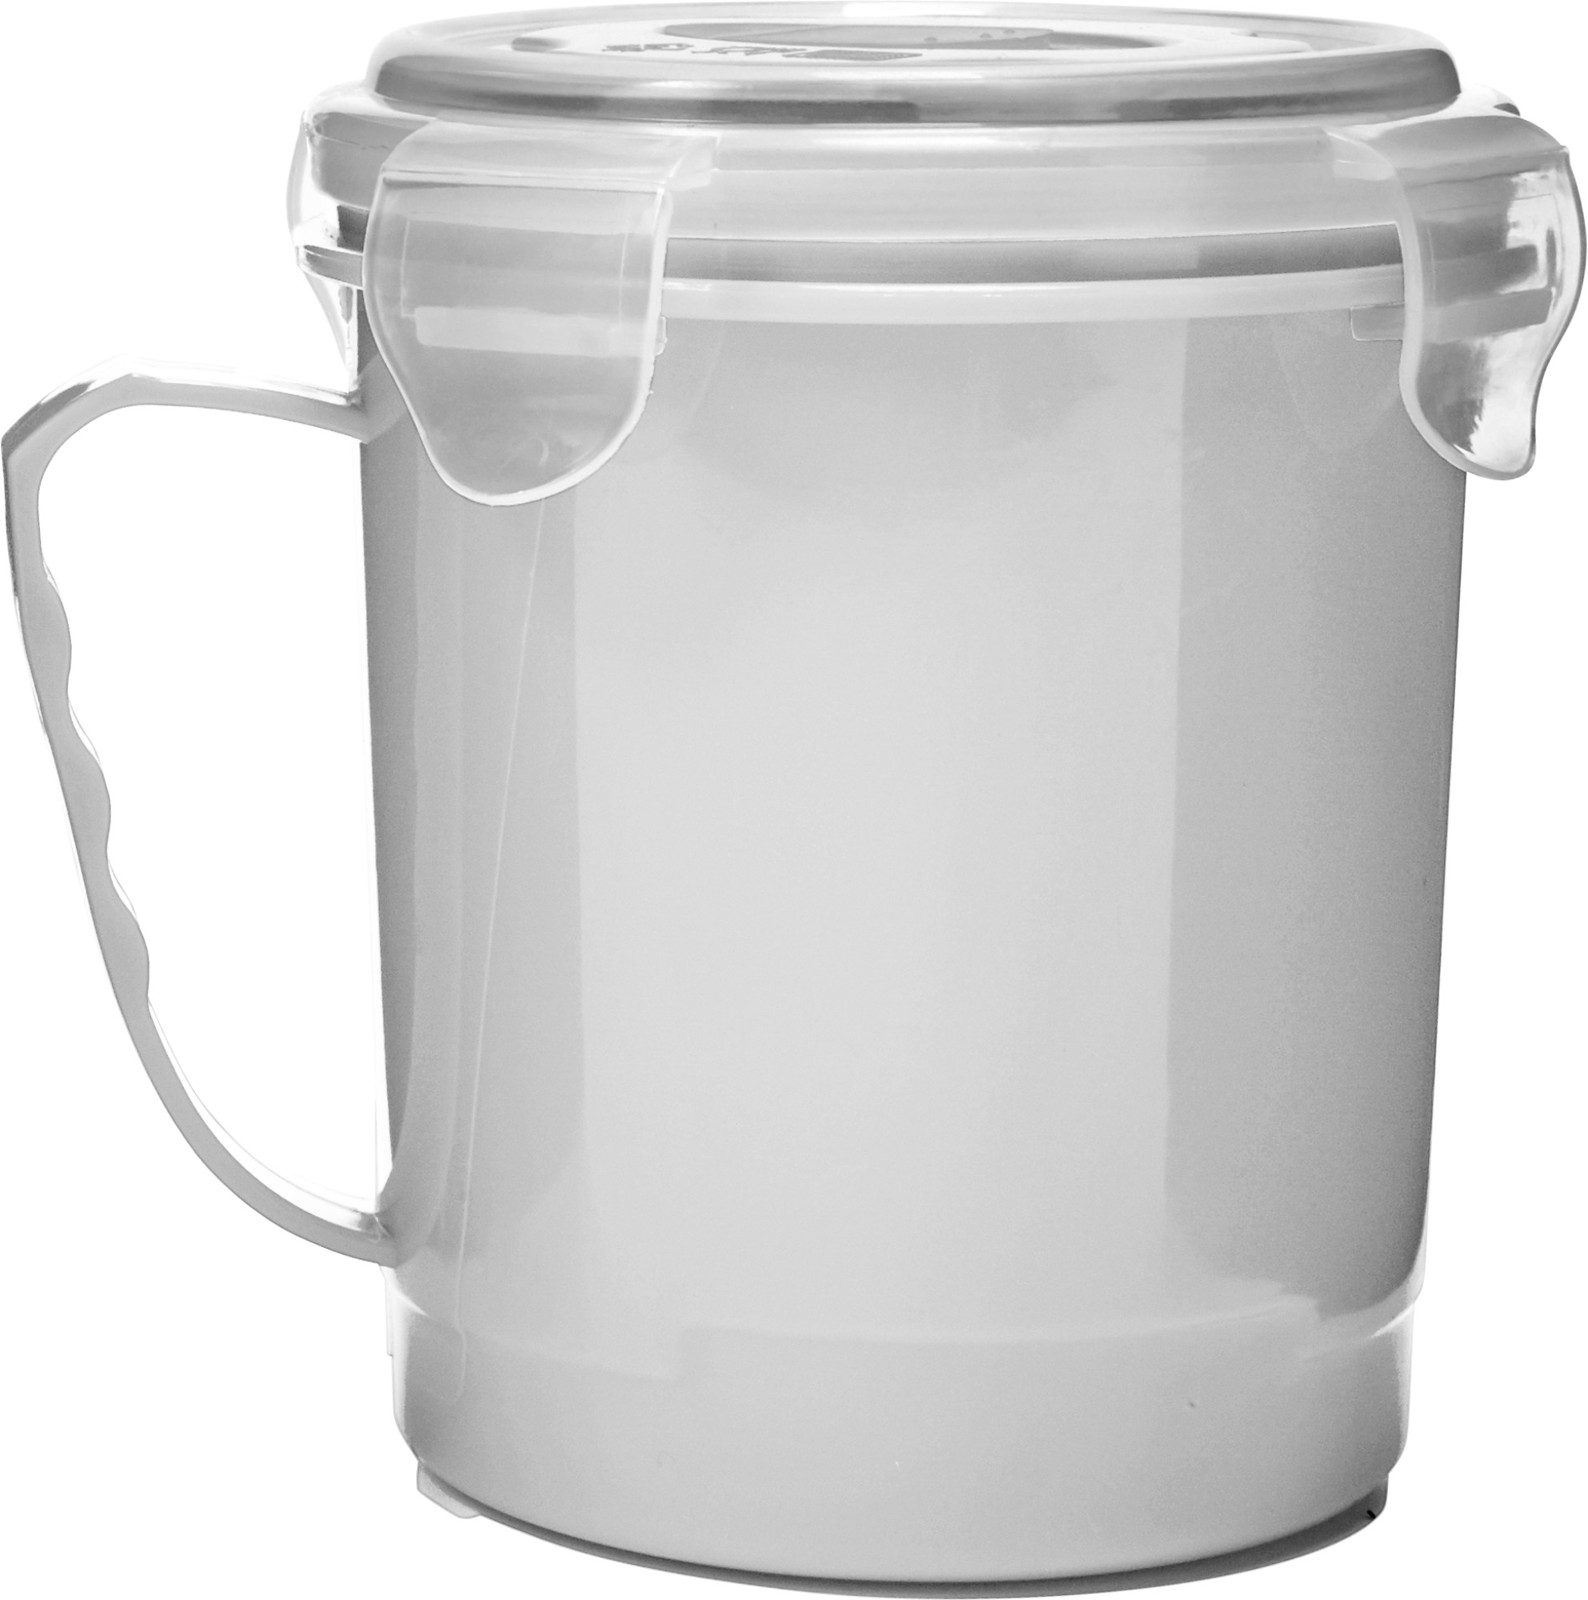 PP microwave cup - White